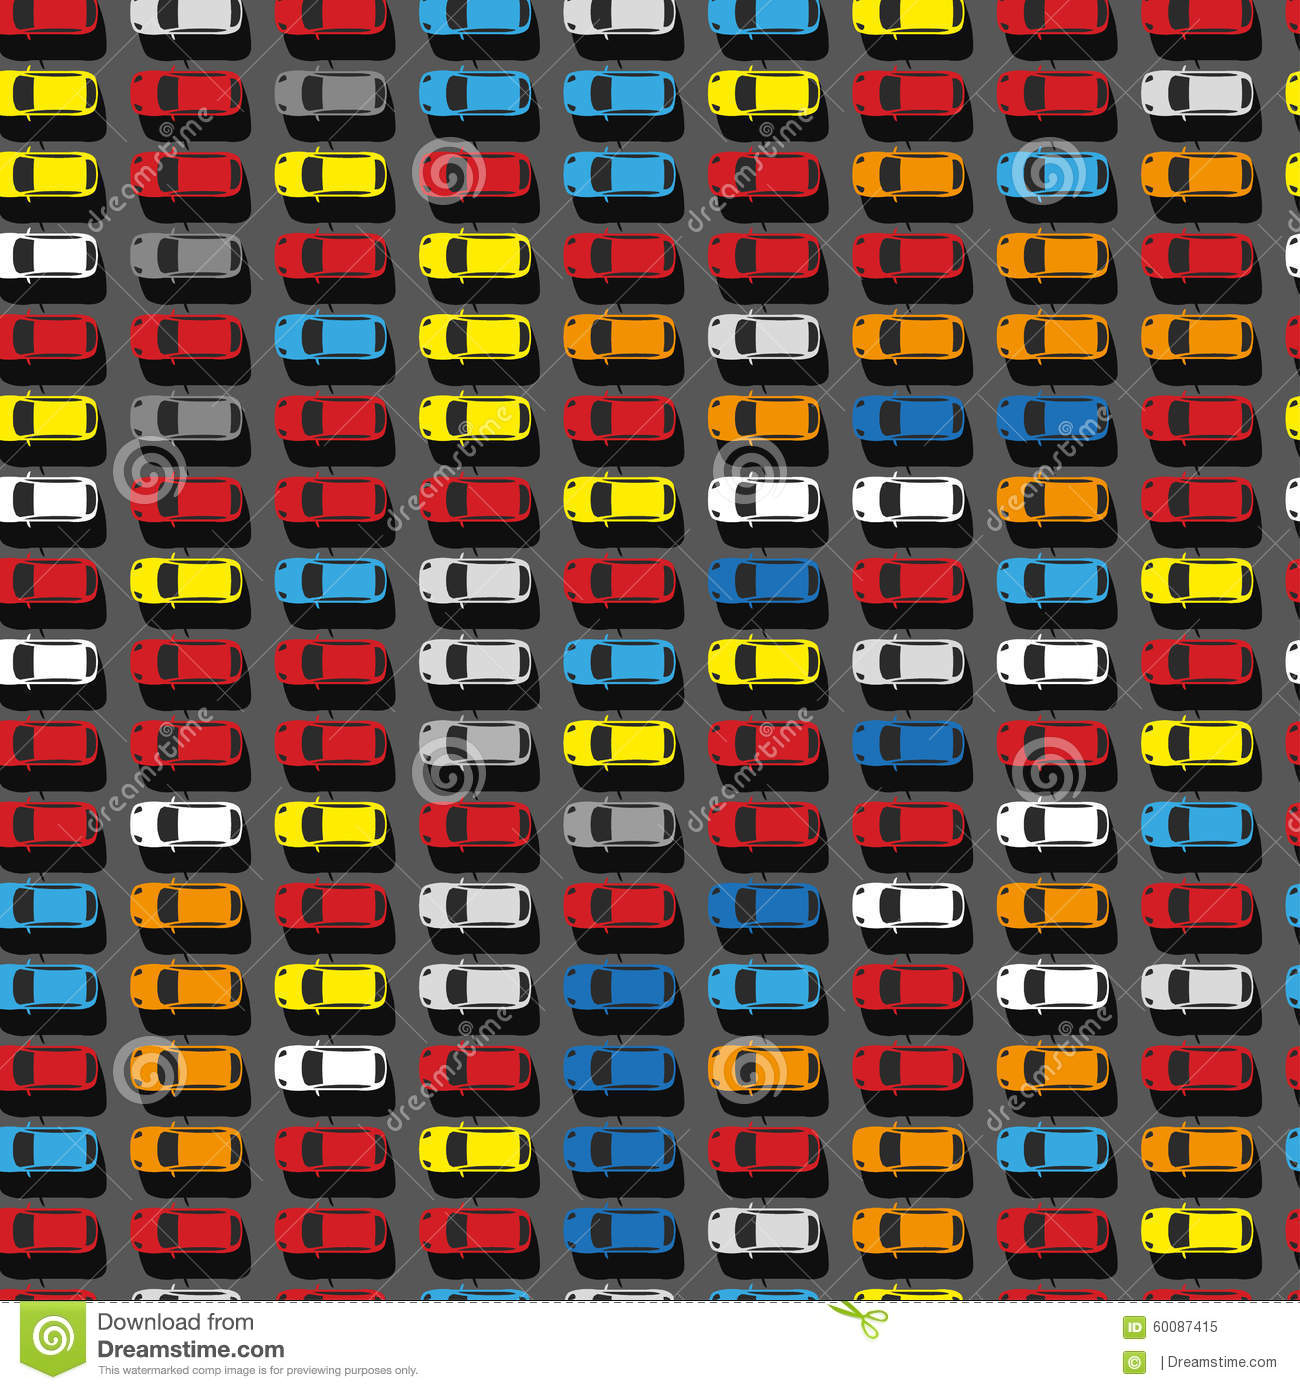 Parking Lot Top View Stock Vector - Image: 60087415